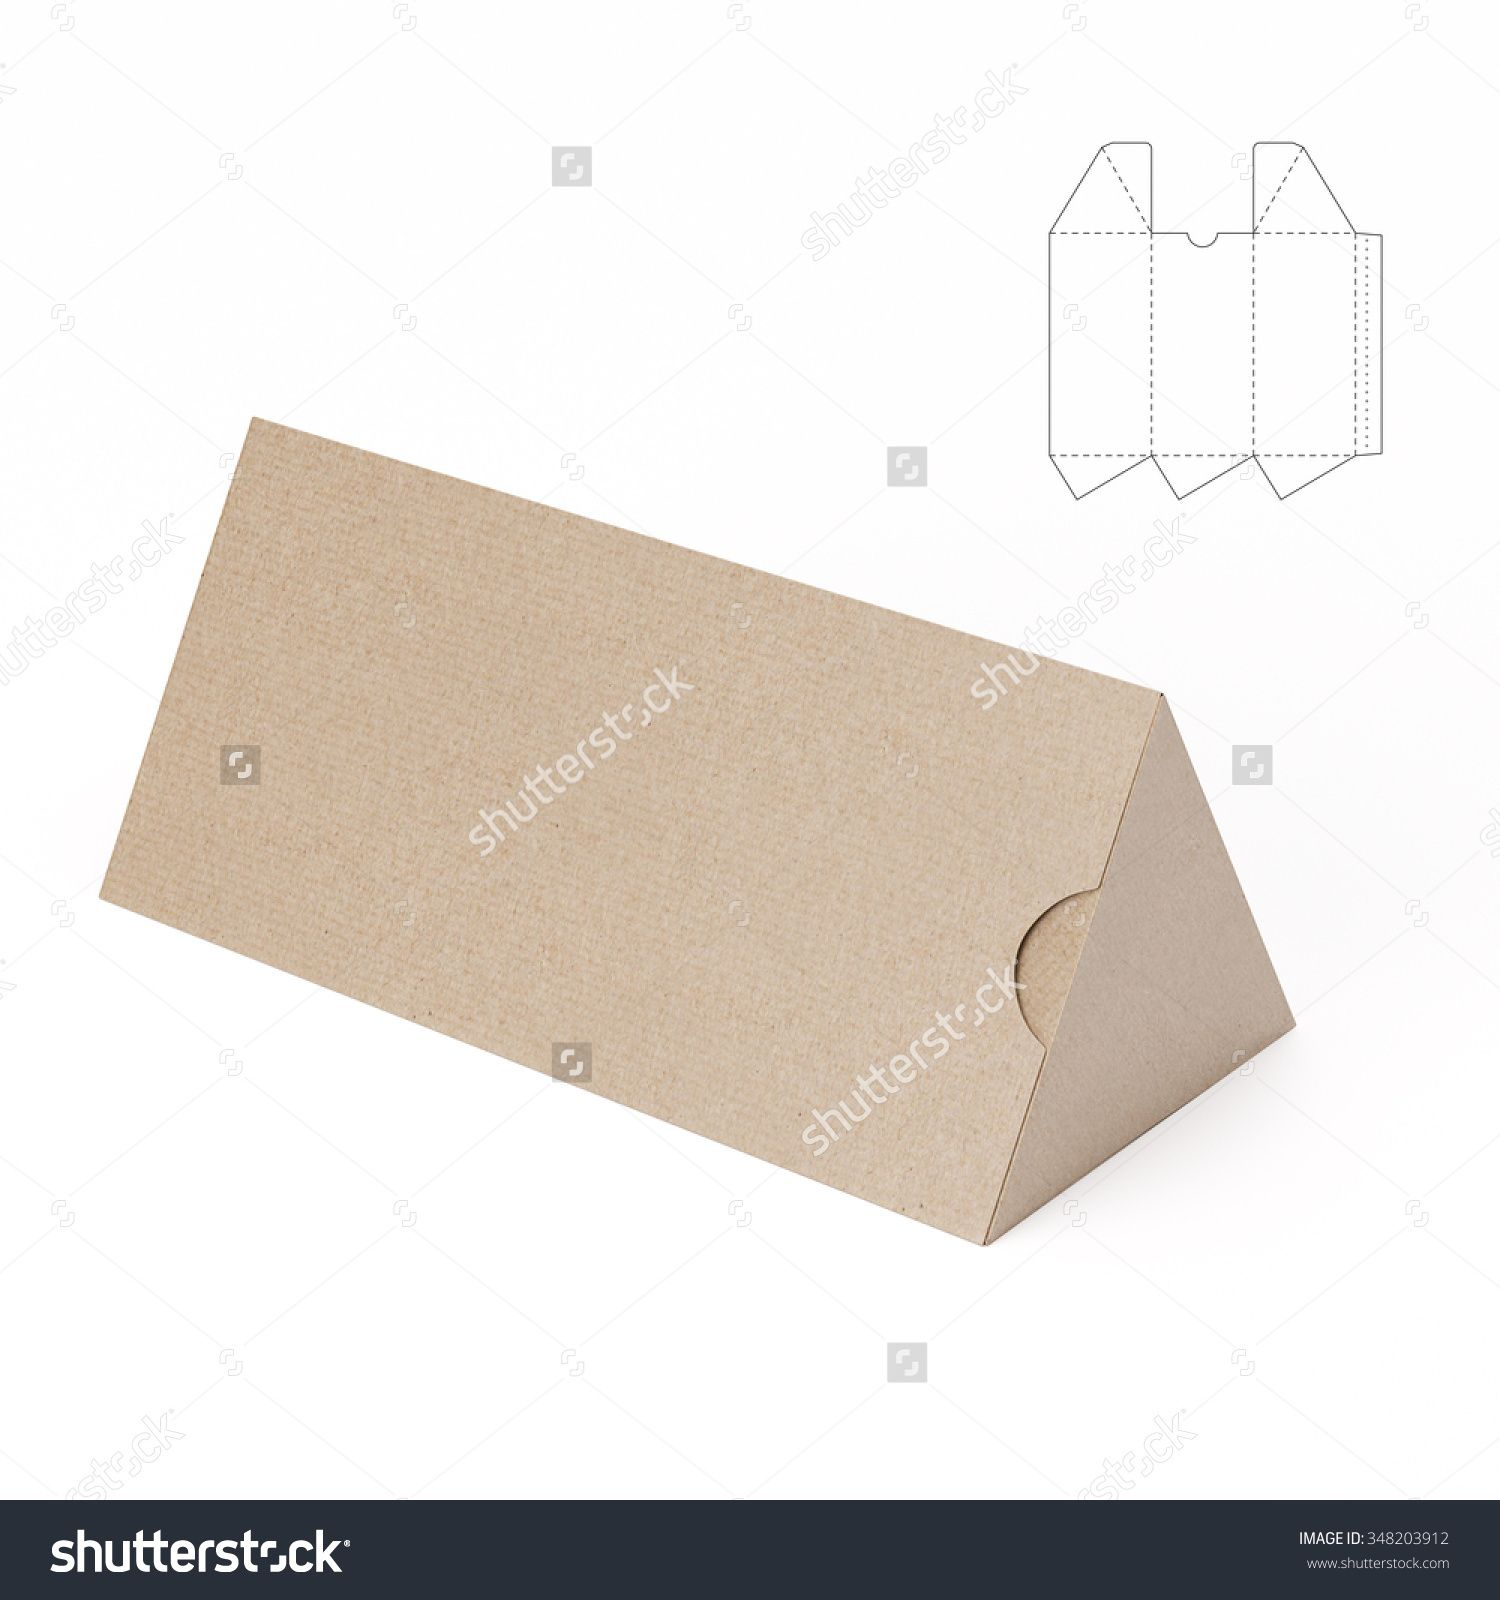 Triangular Tube Box with Die Cut Template | packing | Pinterest